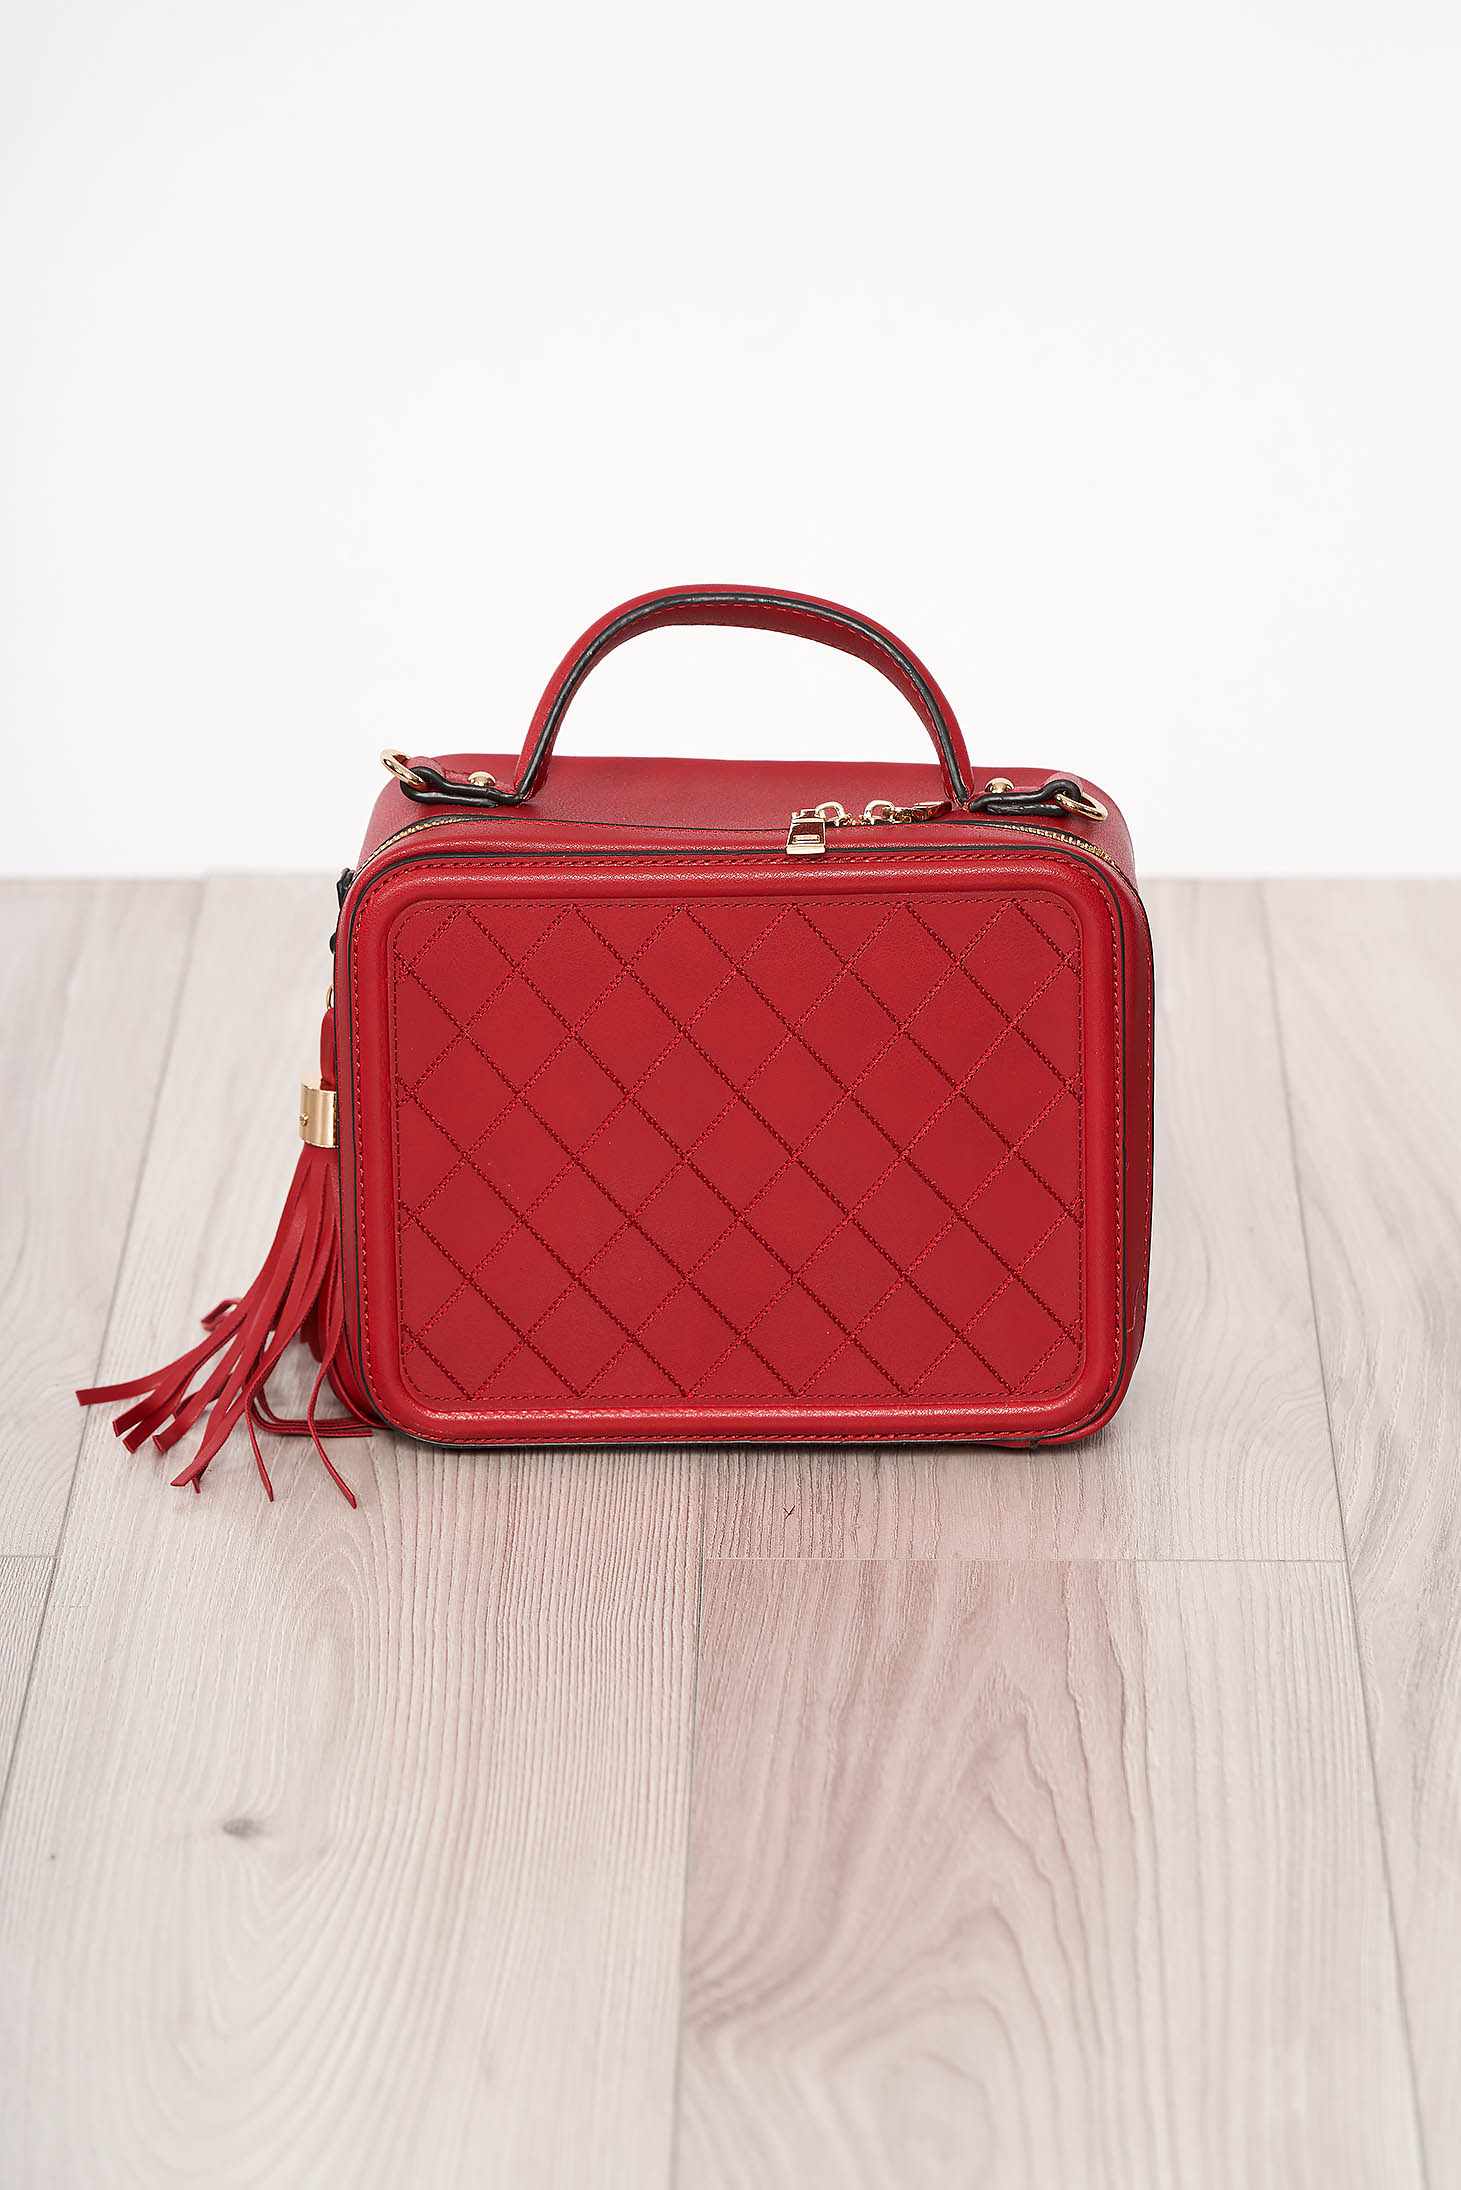 Bag red zipper accessory with tassels ecological leather short handles